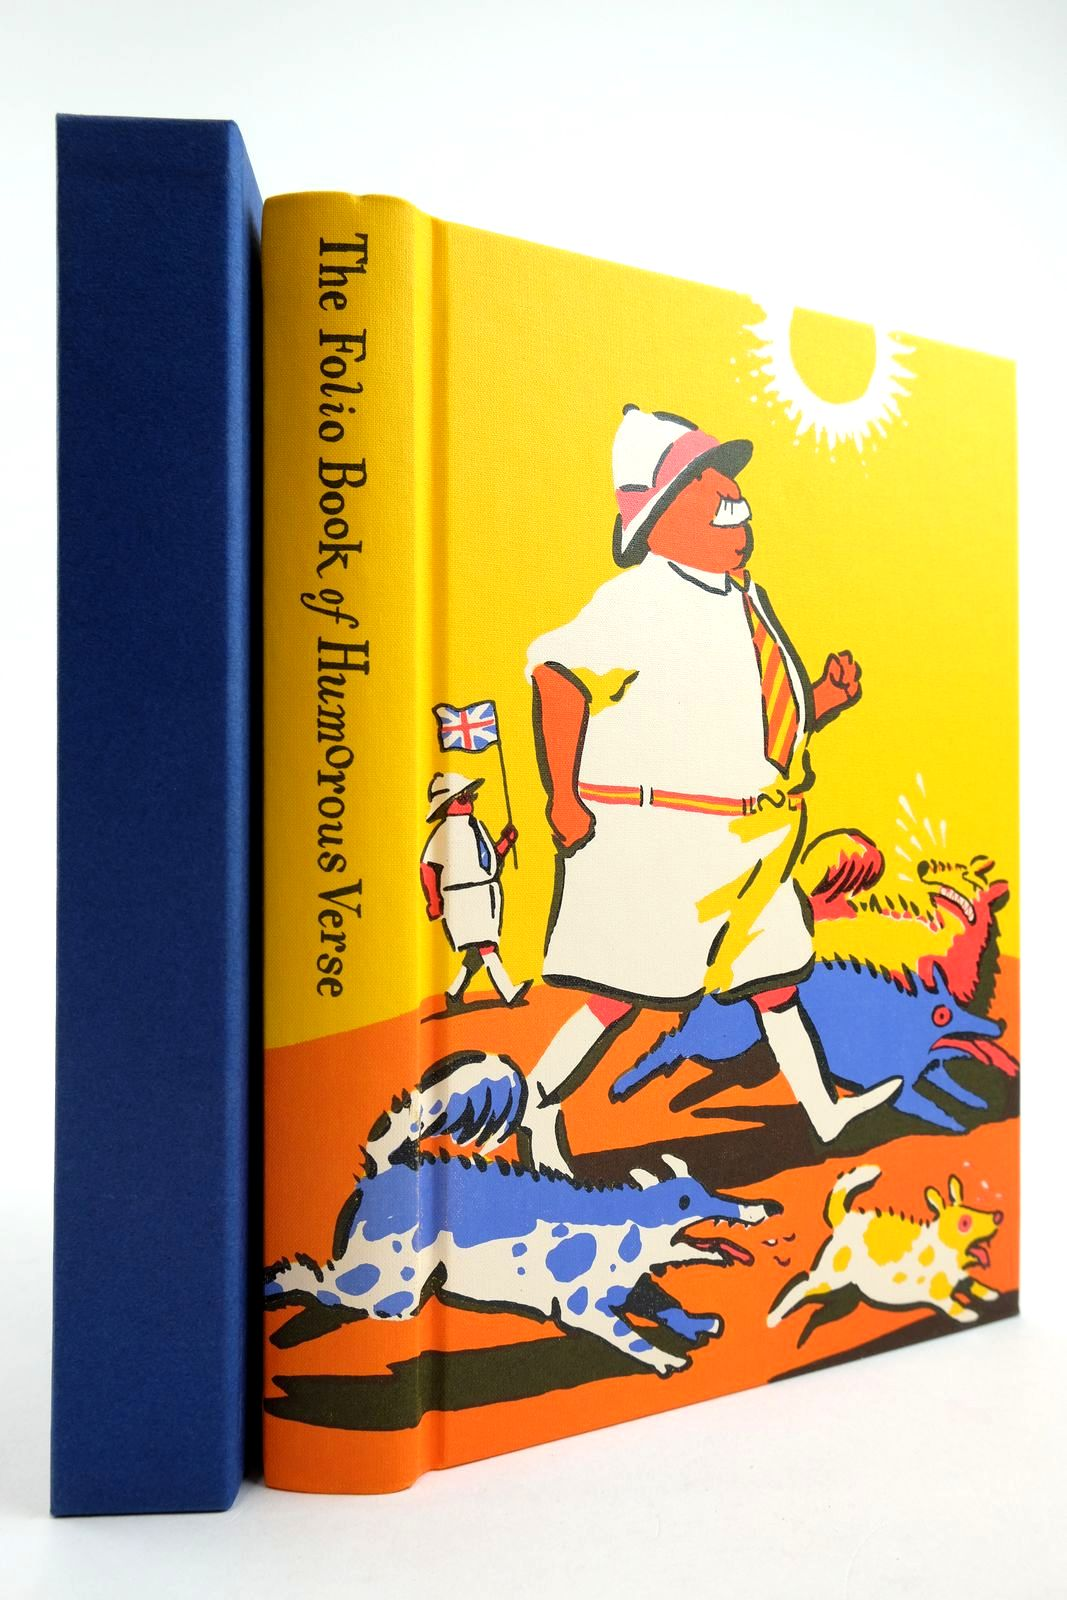 Photo of THE FOLIO BOOK OF HUMOROUS VERSE written by Leeson, Edward illustrated by Simmonds, Posy published by Folio Society (STOCK CODE: 2134177)  for sale by Stella & Rose's Books